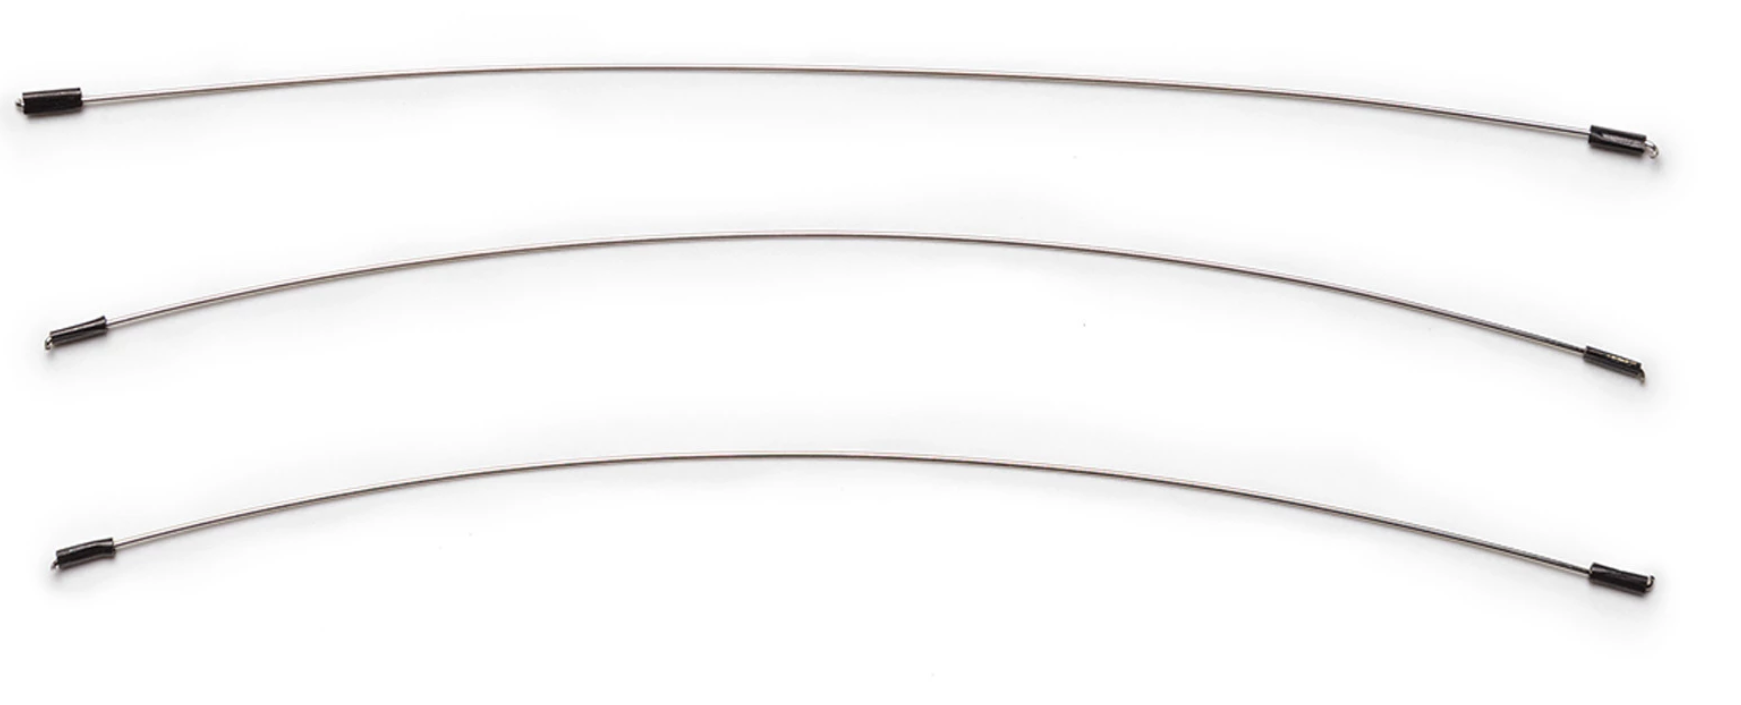 Buy Mudtools Wire Bow Replacement Wires - Carving Bow Straight for sale in India - Bhoomi Pottery